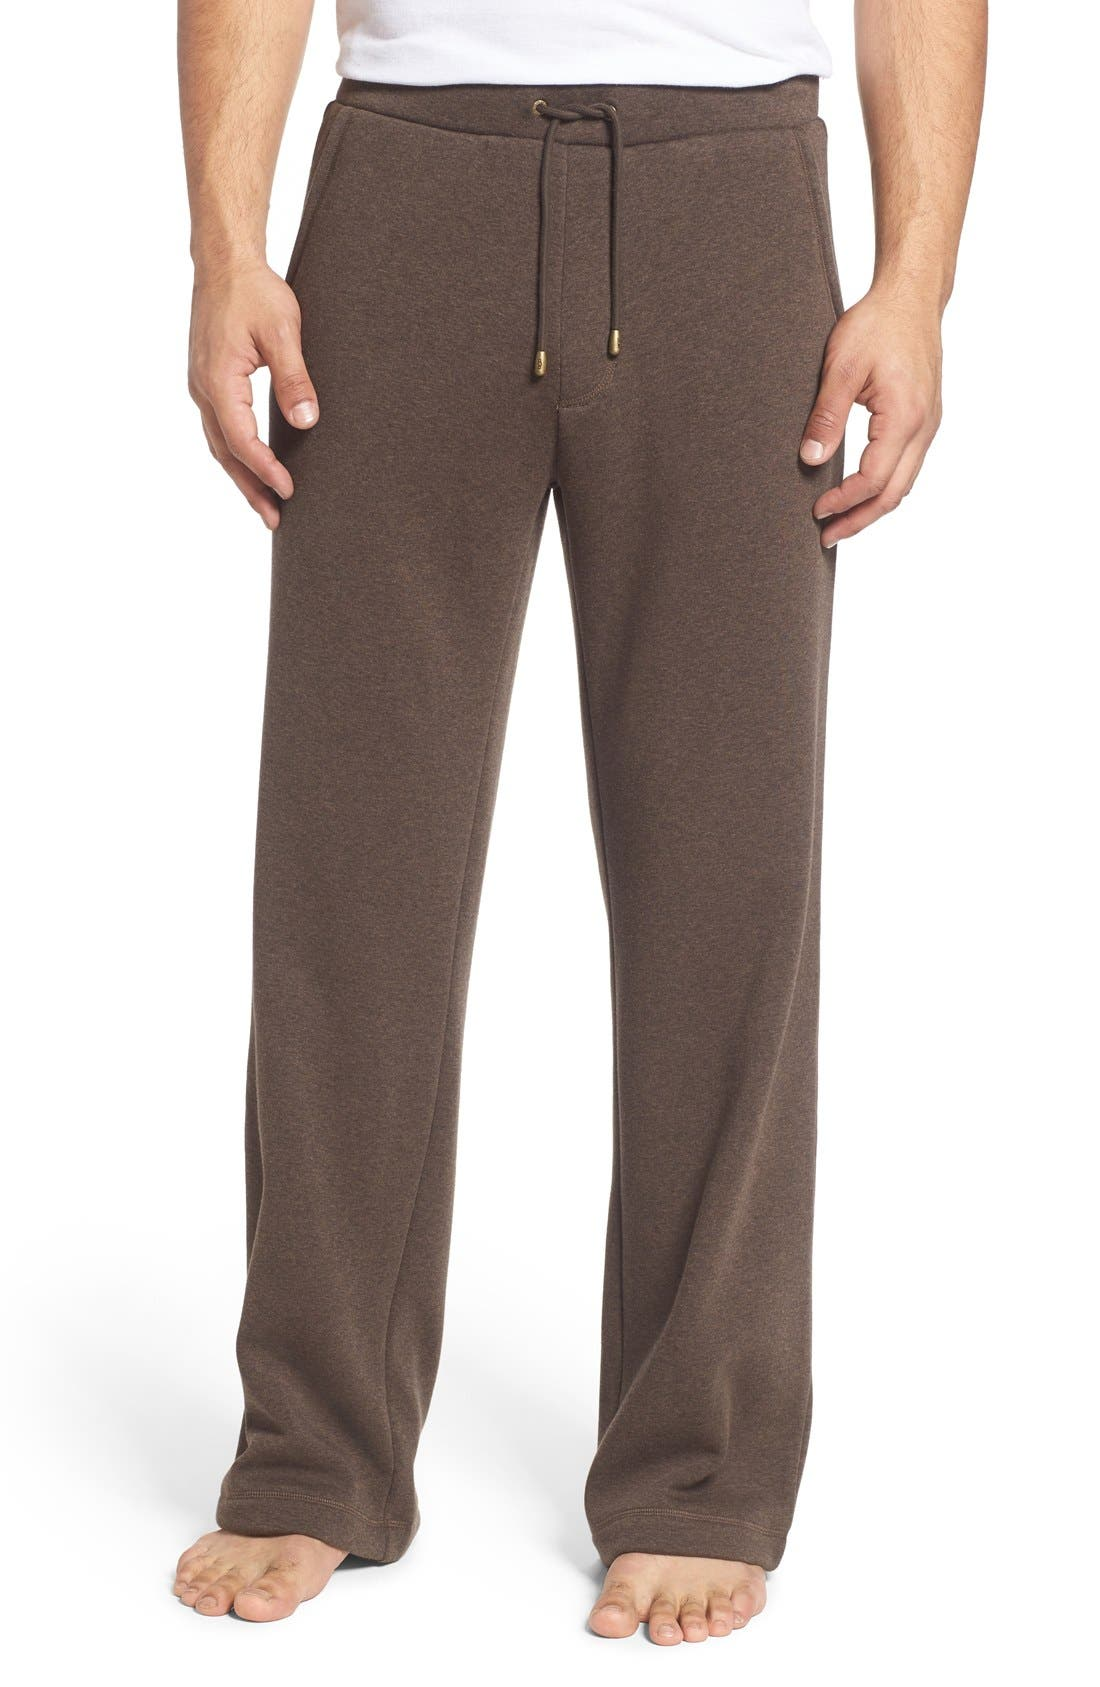 Alternate Image 1 Selected - UGG® 'Colton' Lounge Pants